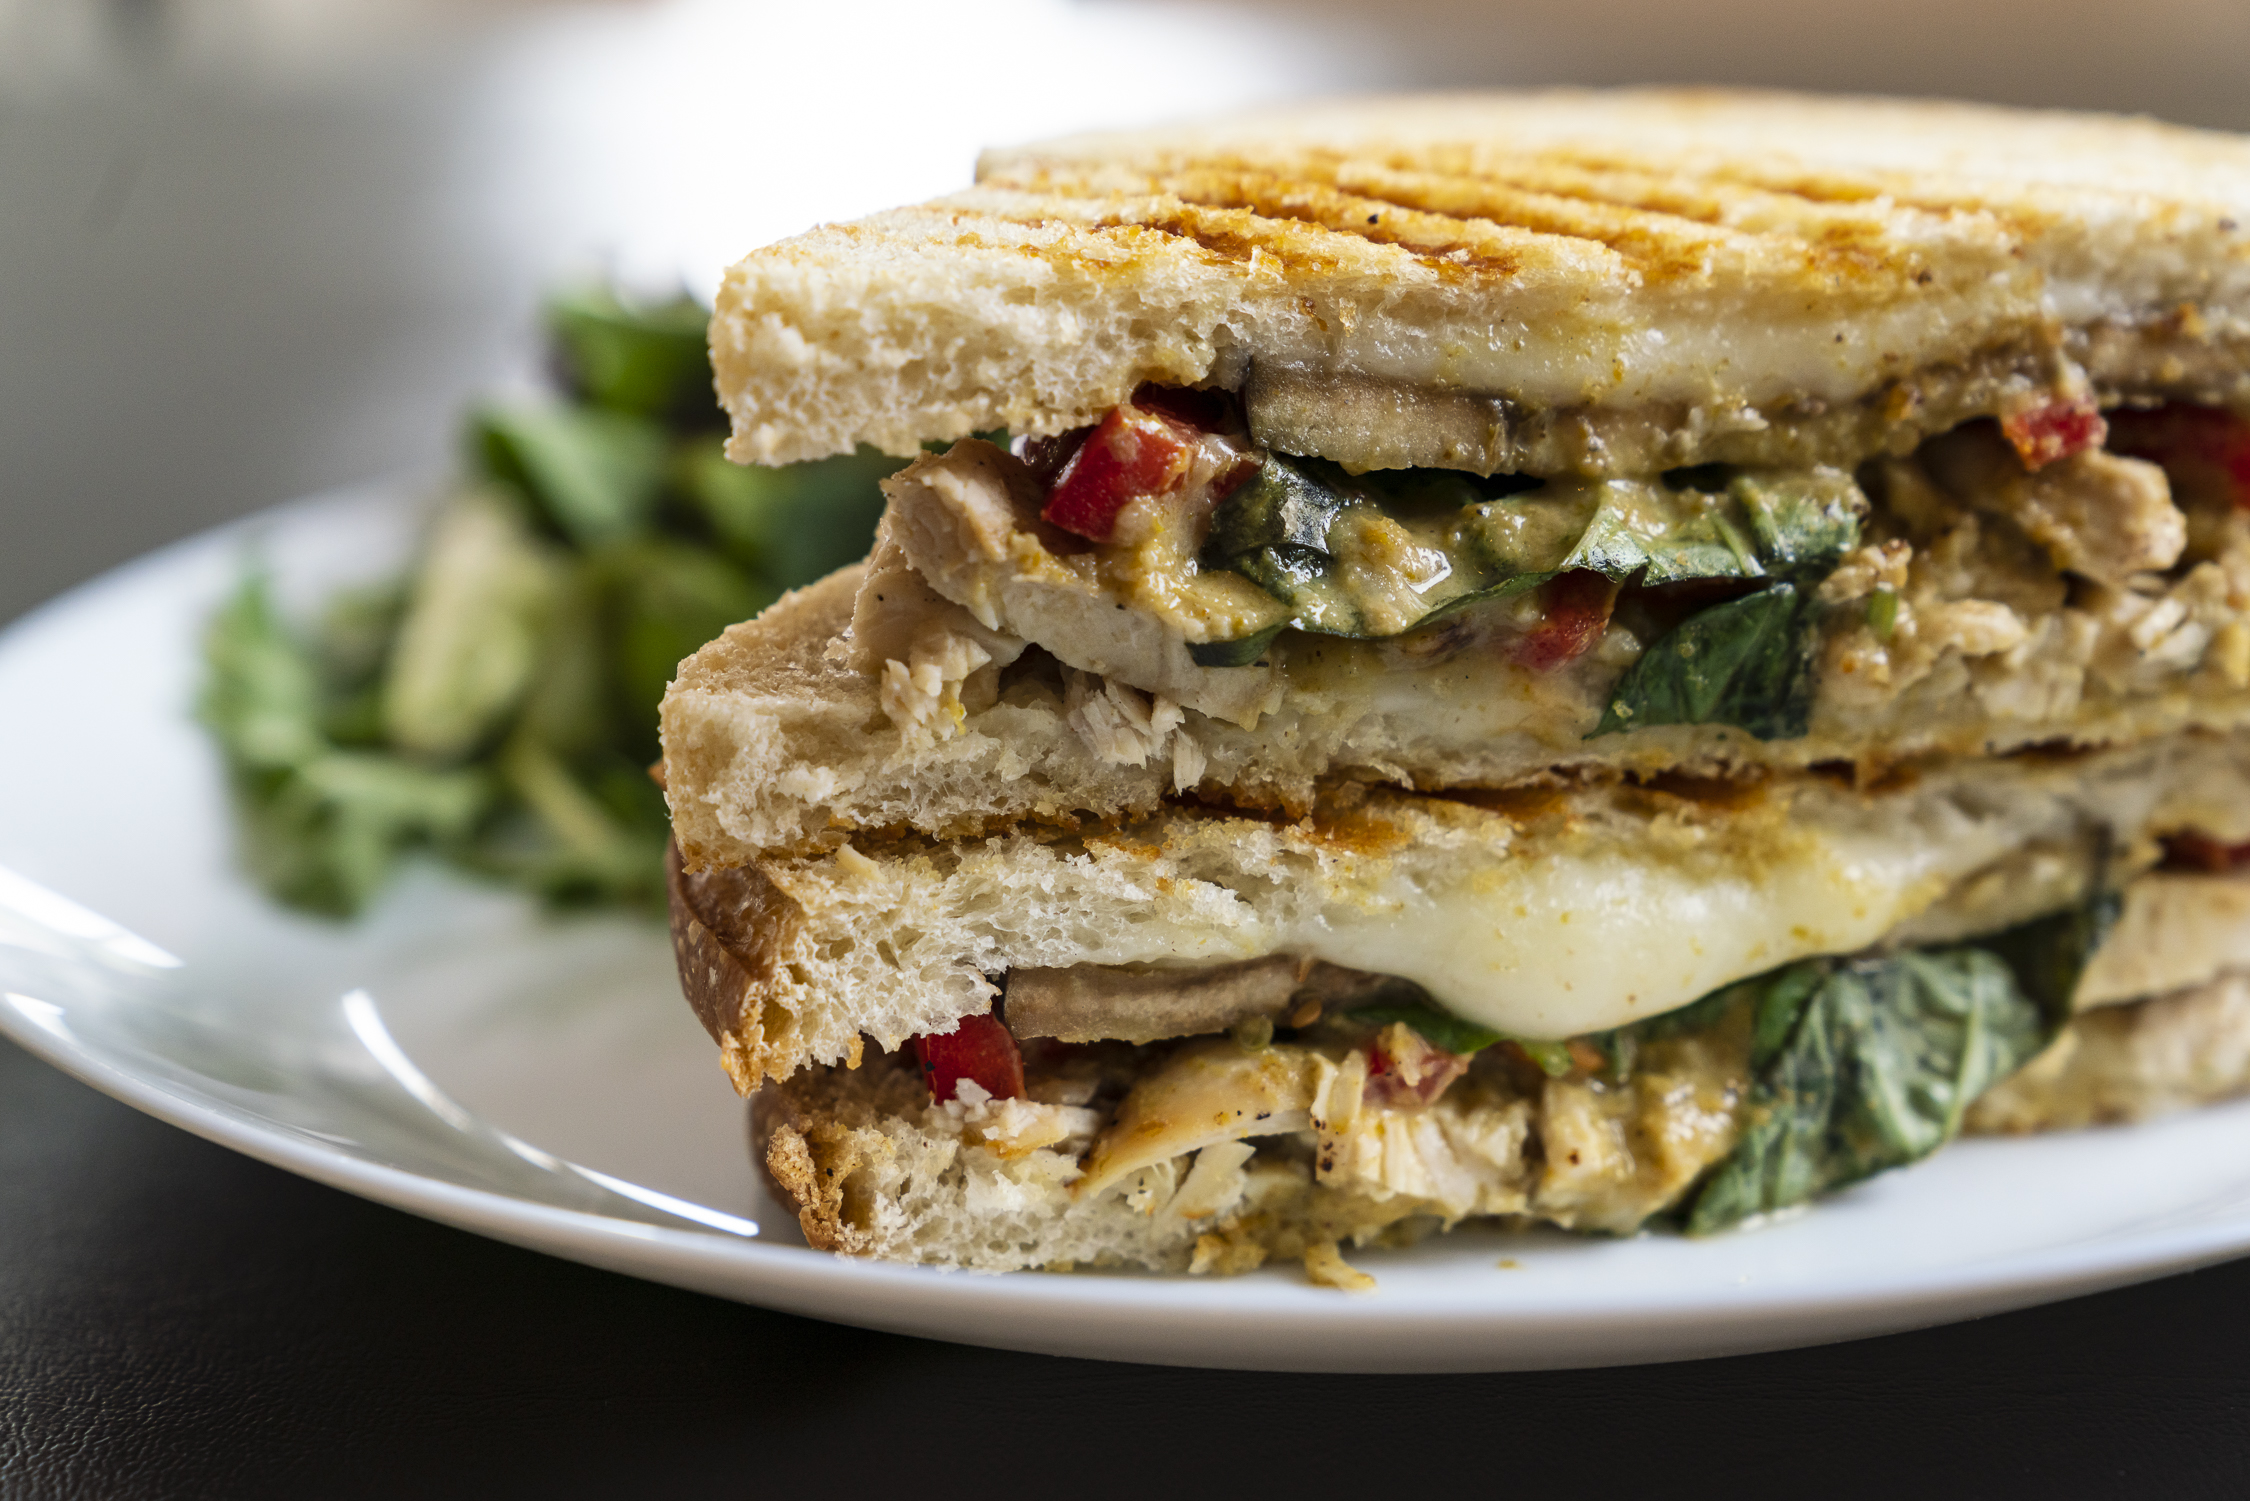 Green Curry Sandwich